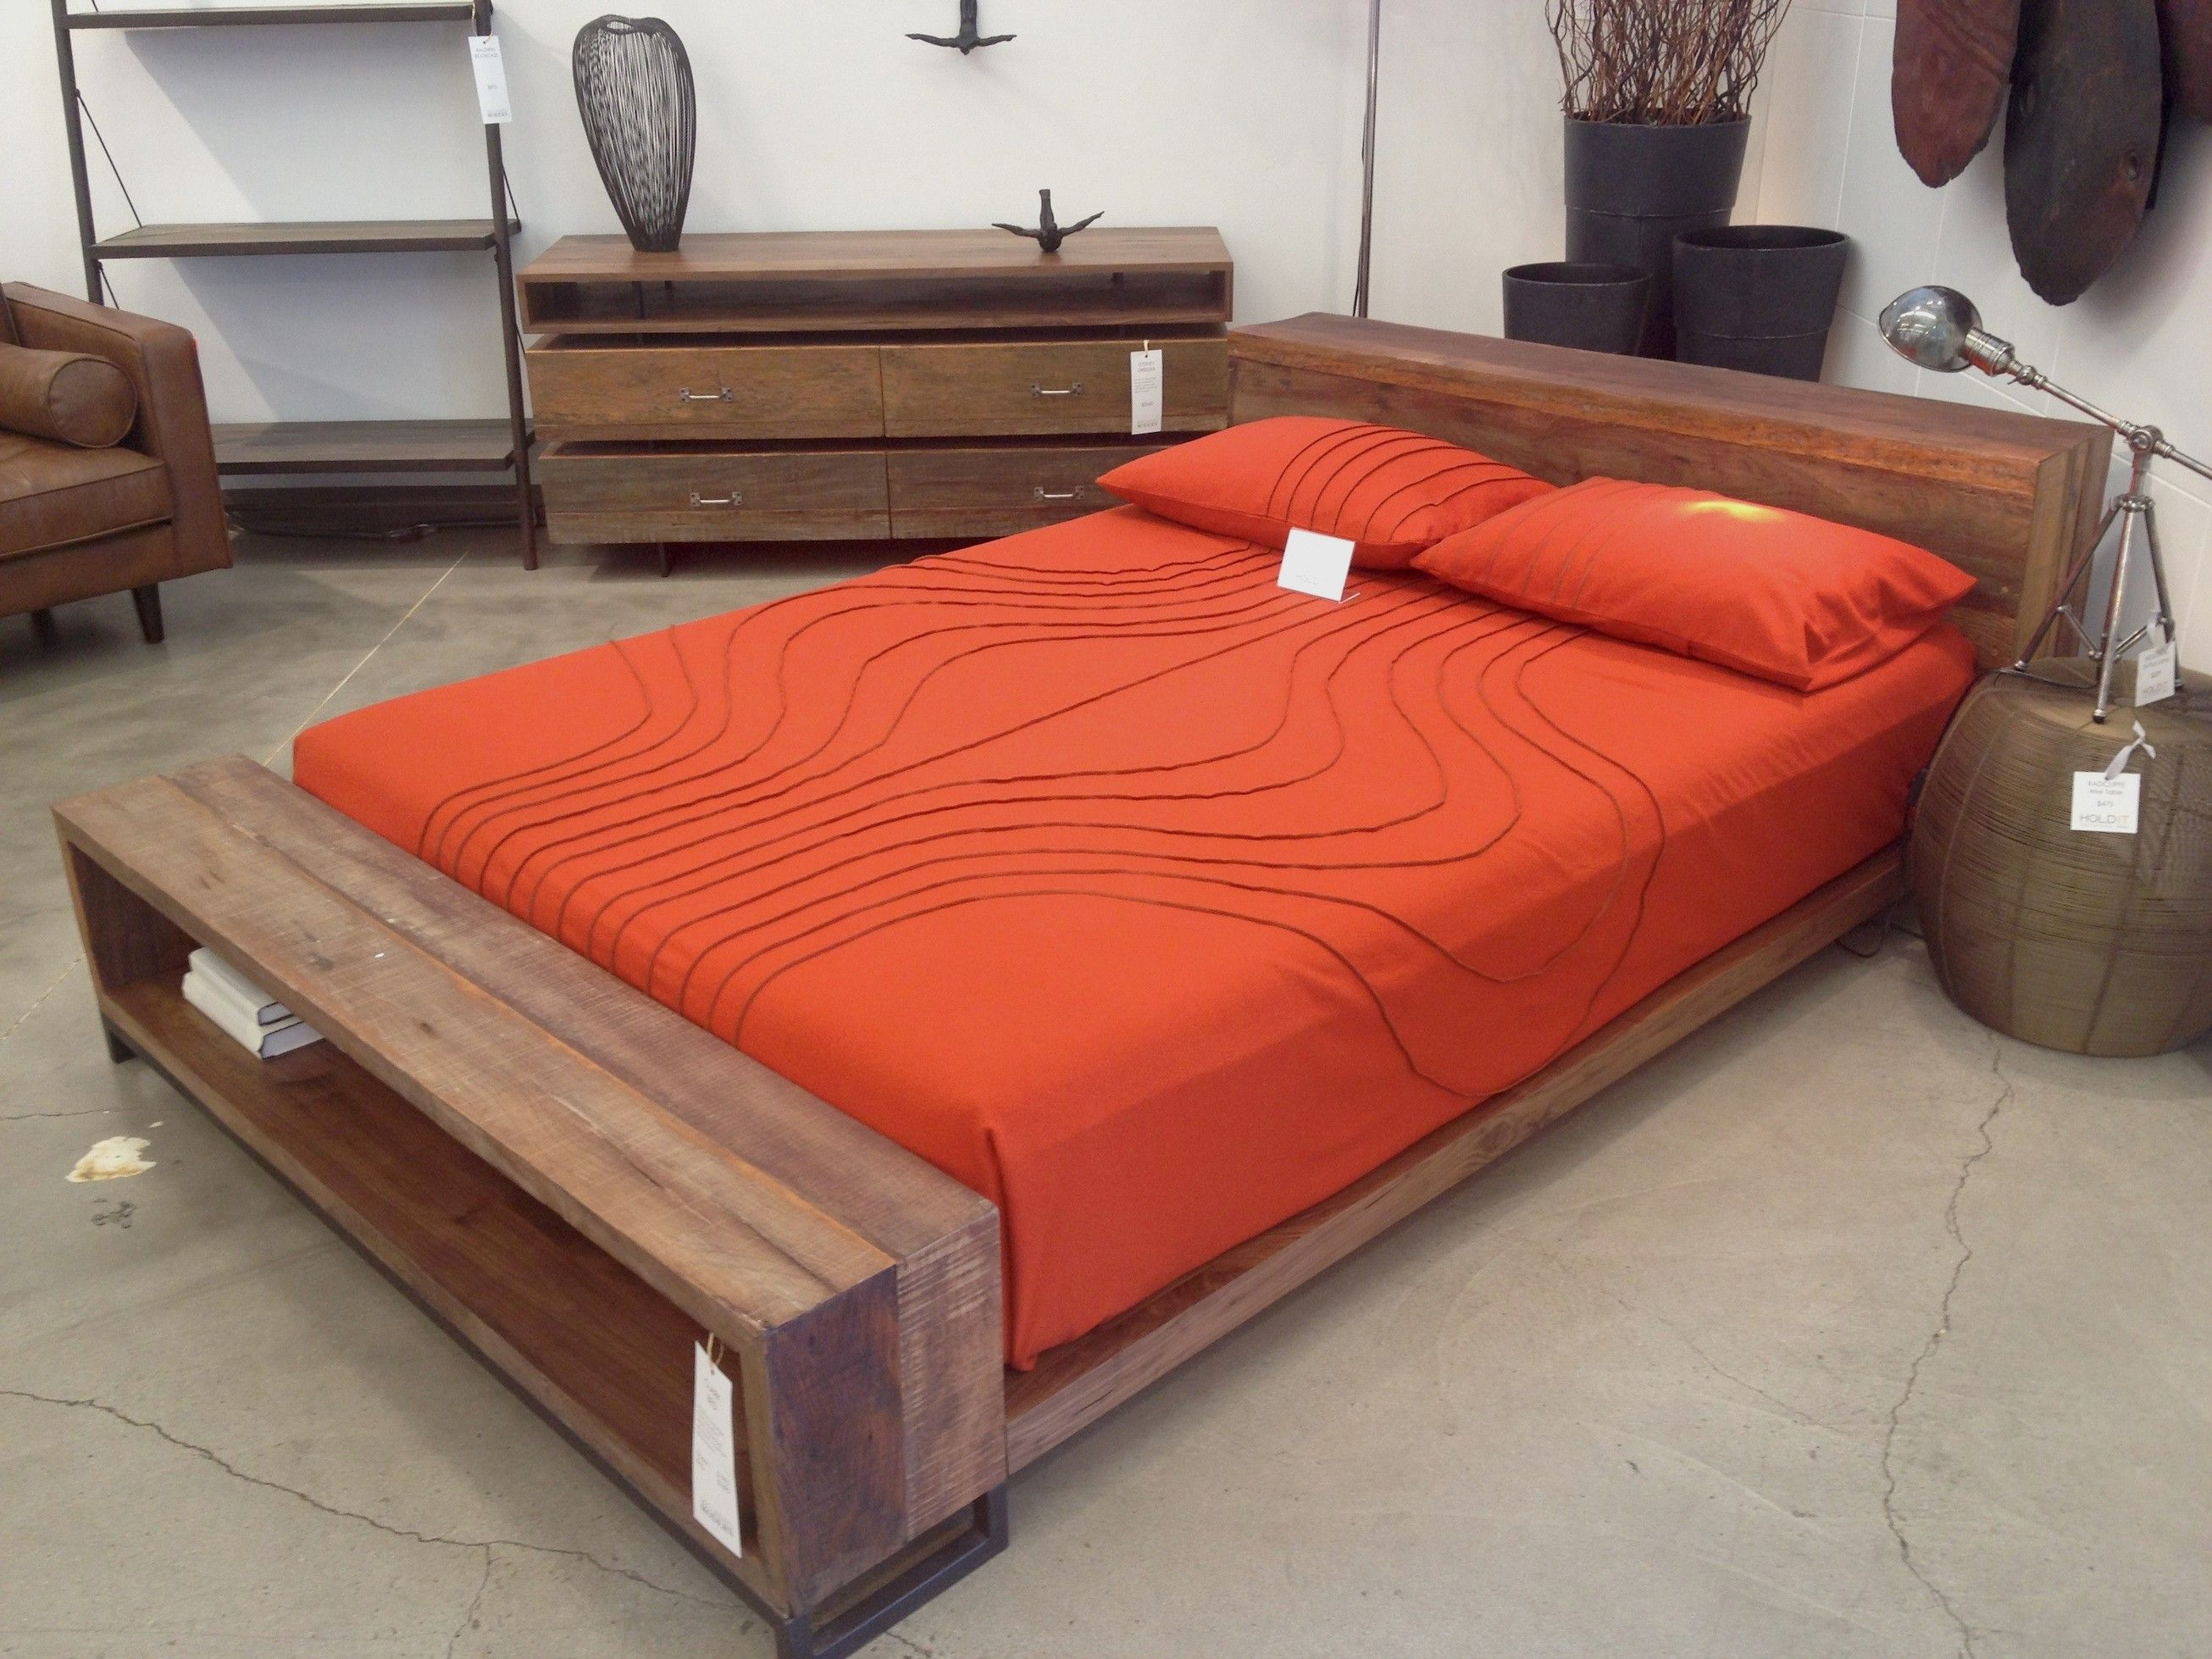 Brown Wooden Queen Bed Frame With Shelf Storage On The Front Side Combined  With Orange Bedding Set Placed On The Gray Floor. Terrific Diy Queen Bed  Frame ...